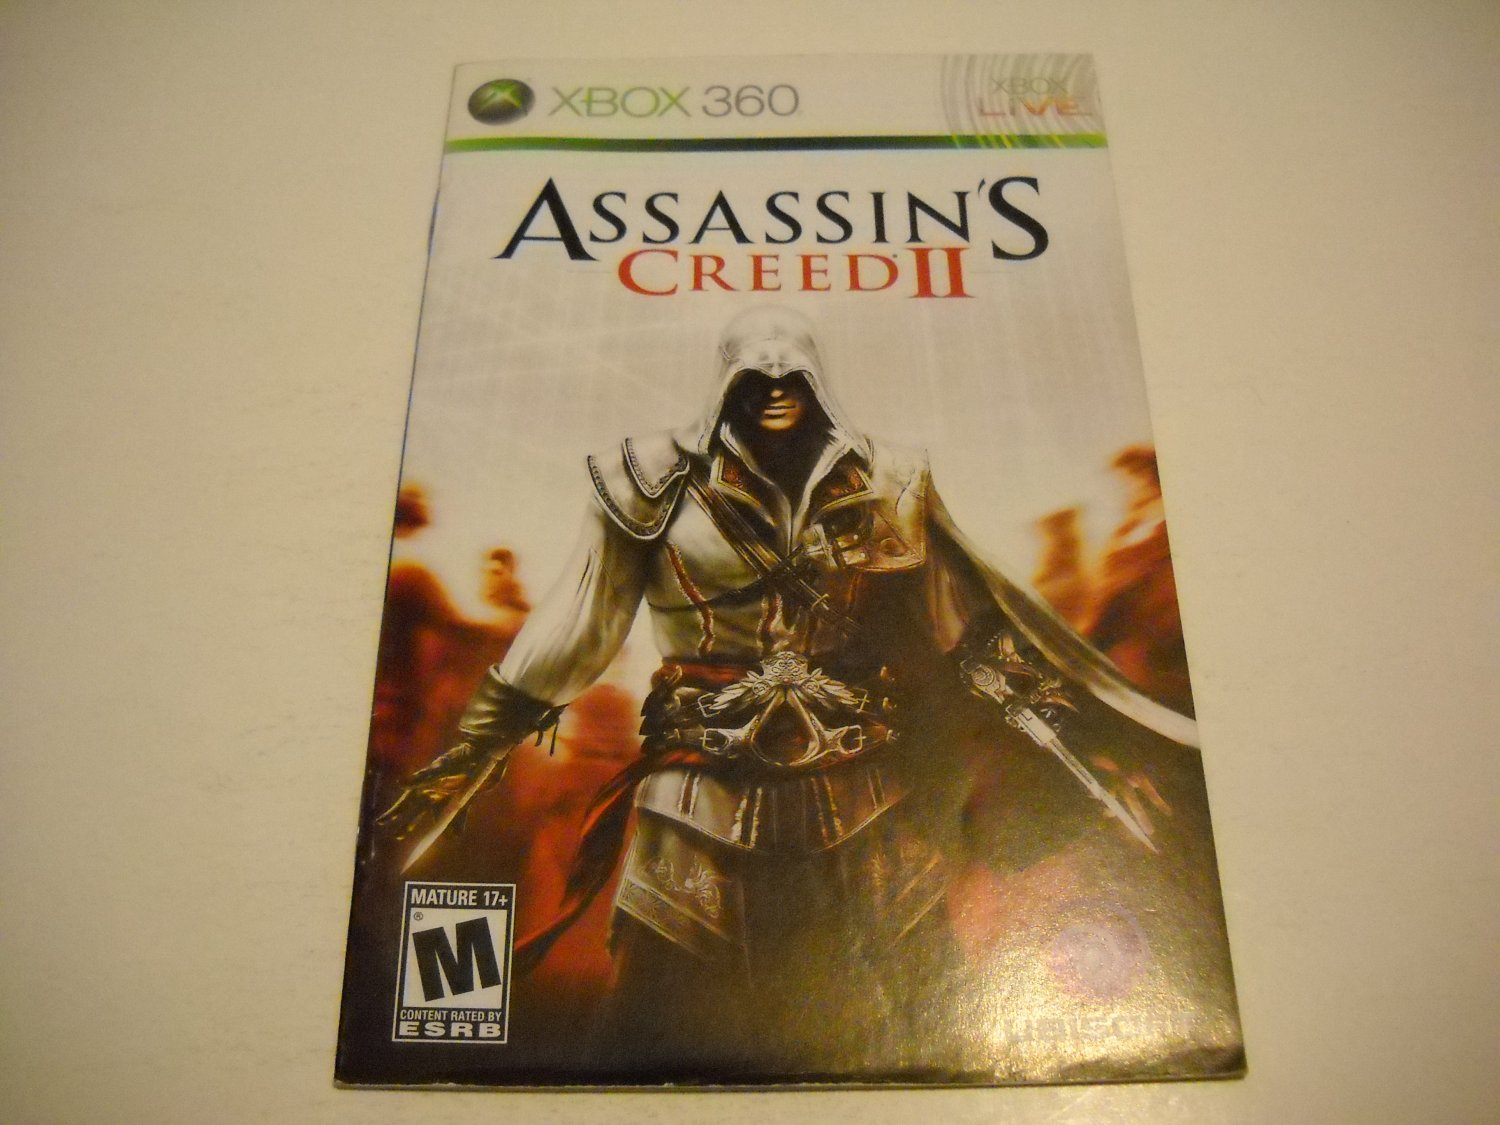 Manual ONLY ~  for Assassin's Creed II / 2   - Xbox 360 Instruction Booklet